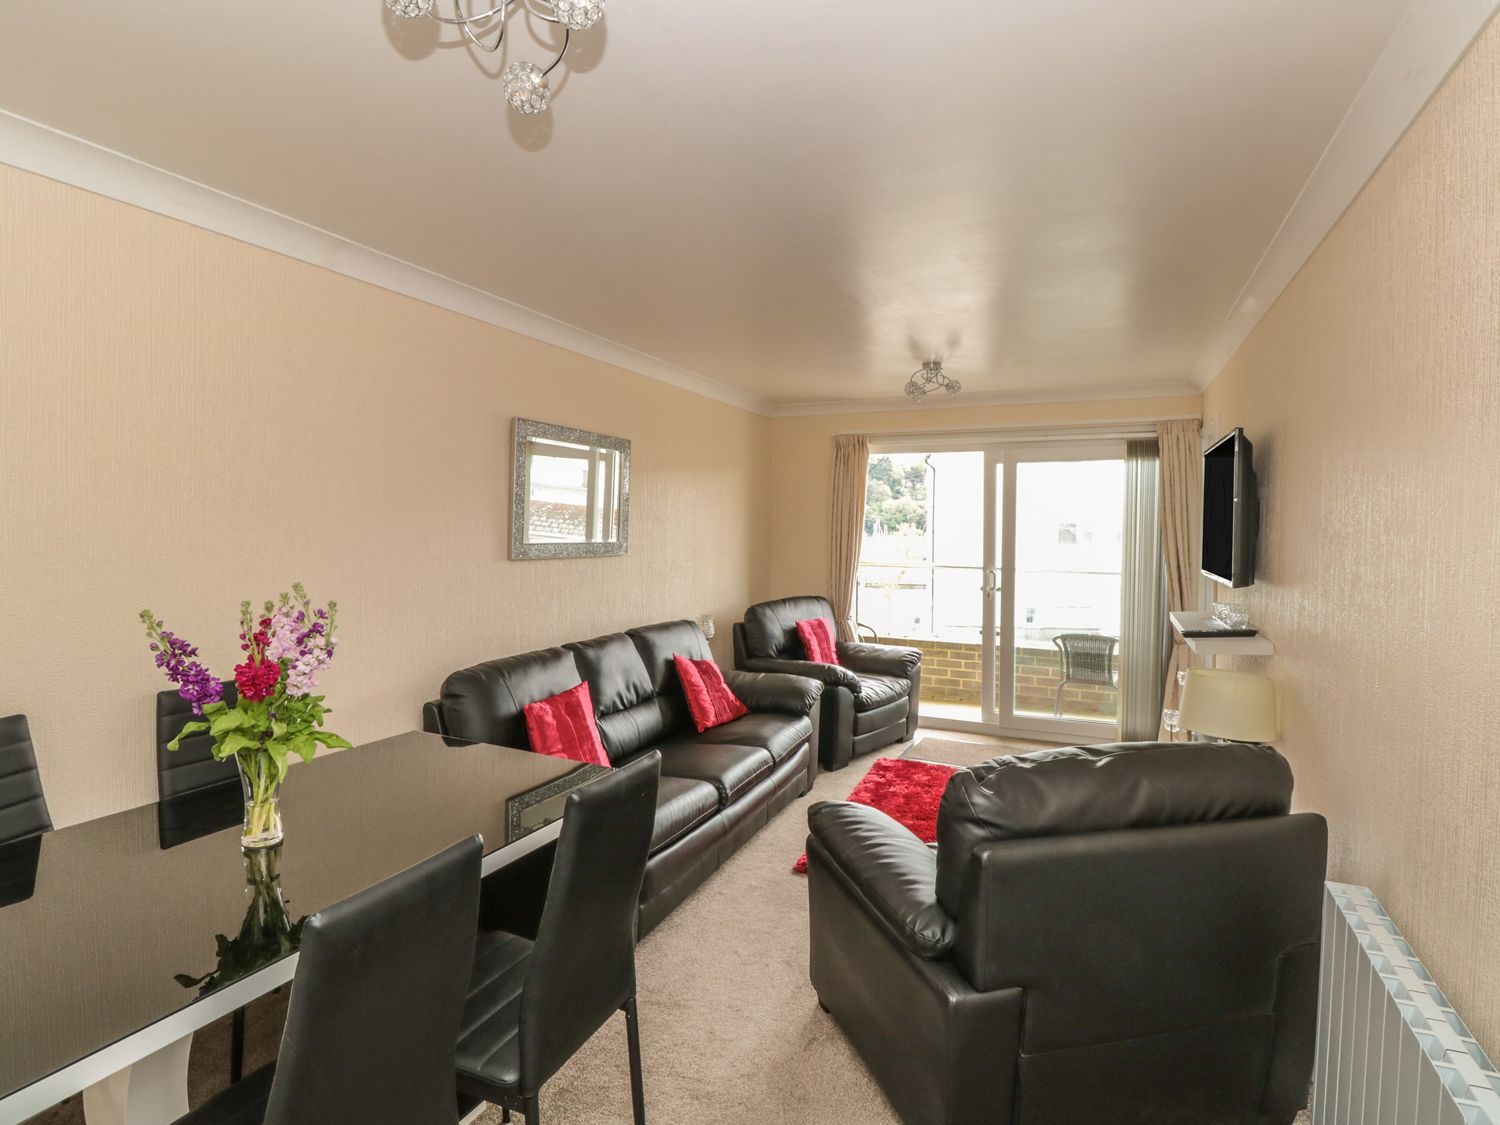 2 Dartside Court - Devon - 1011555 - photo 1